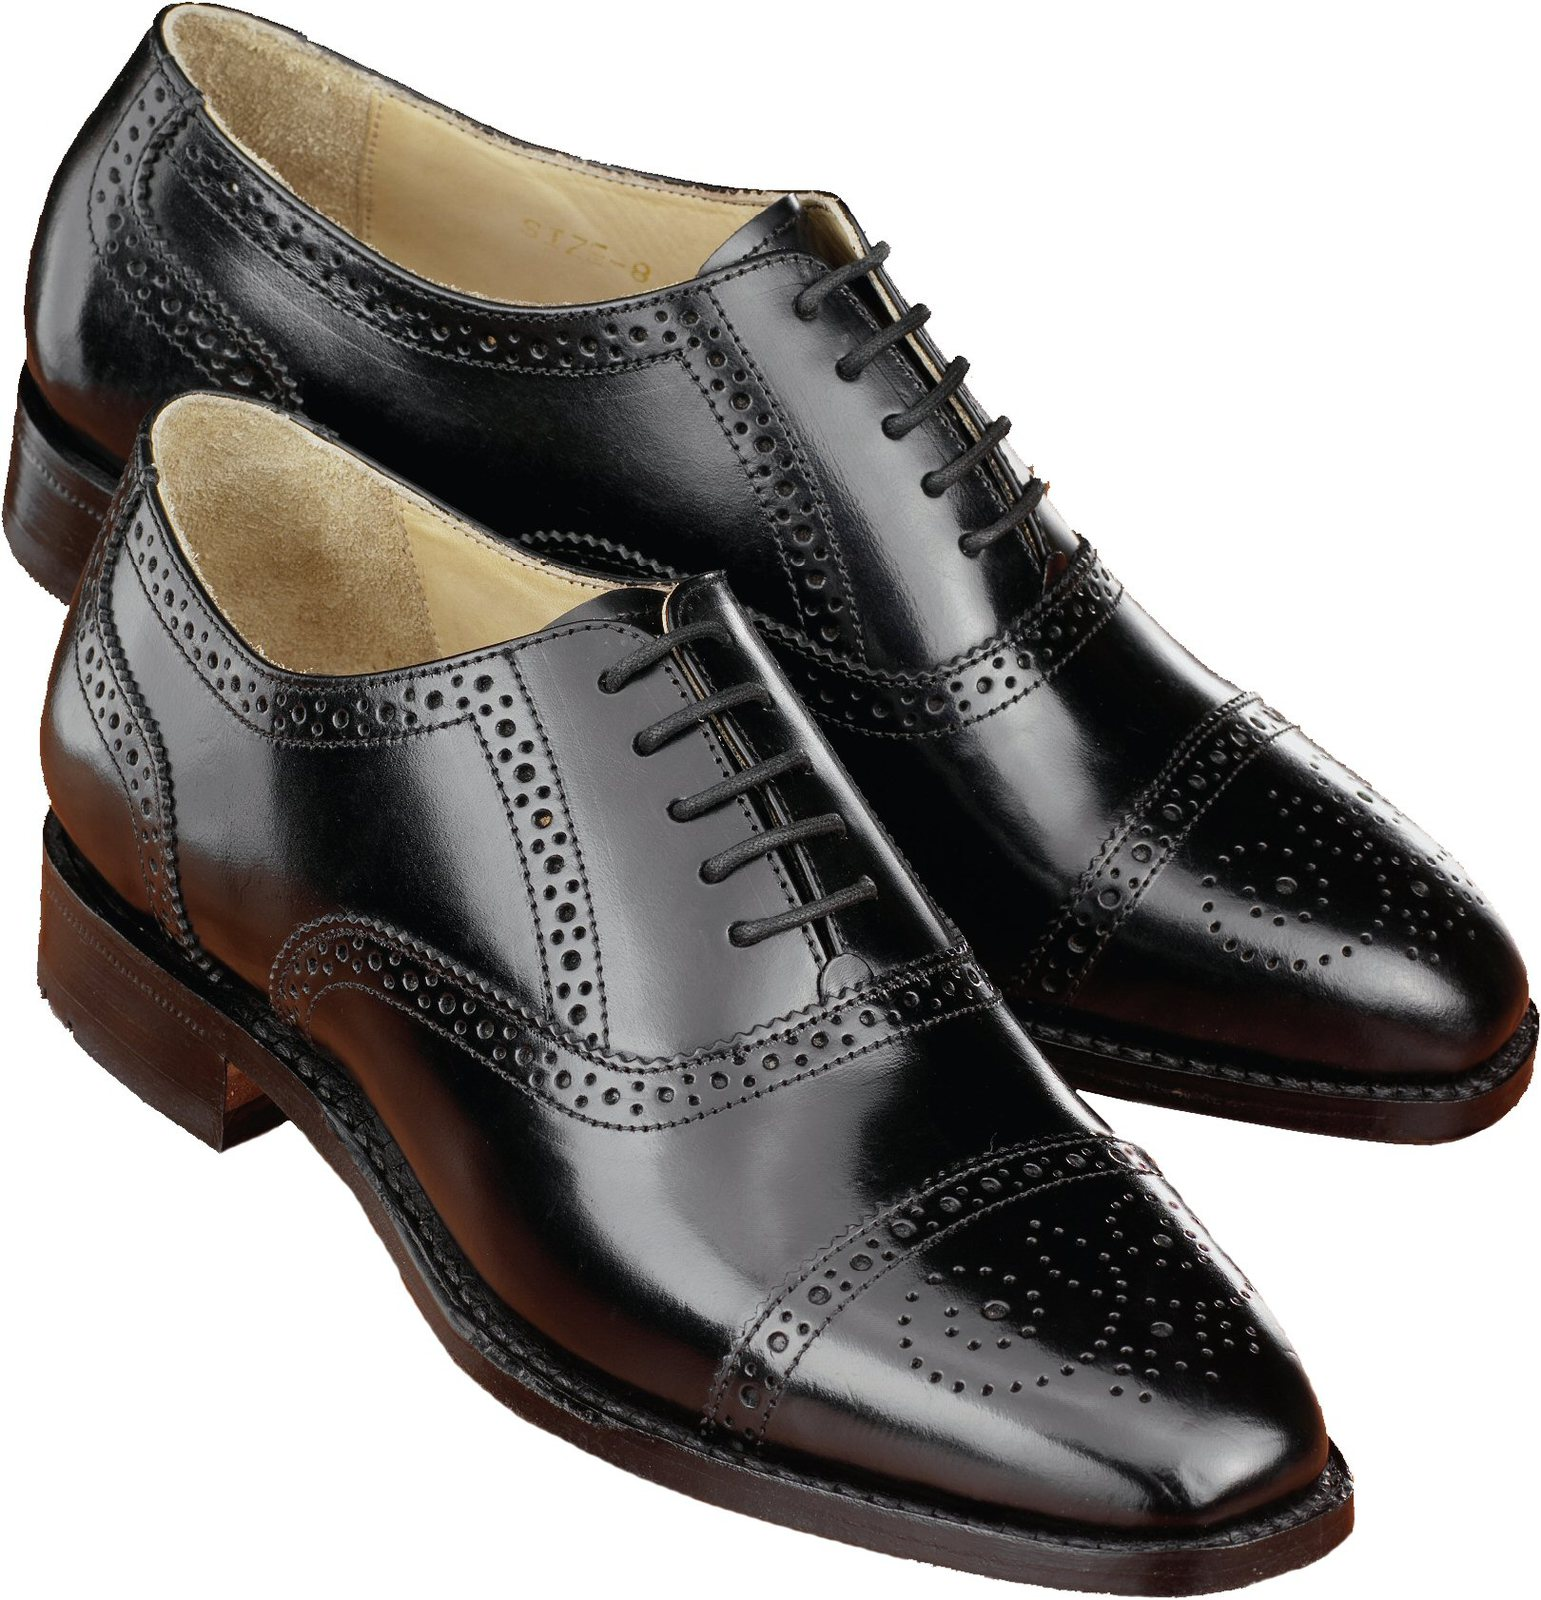 HANDMADE MENS LEATHER SHOES, MEN OXFORD BROGUE DRESS SHOES